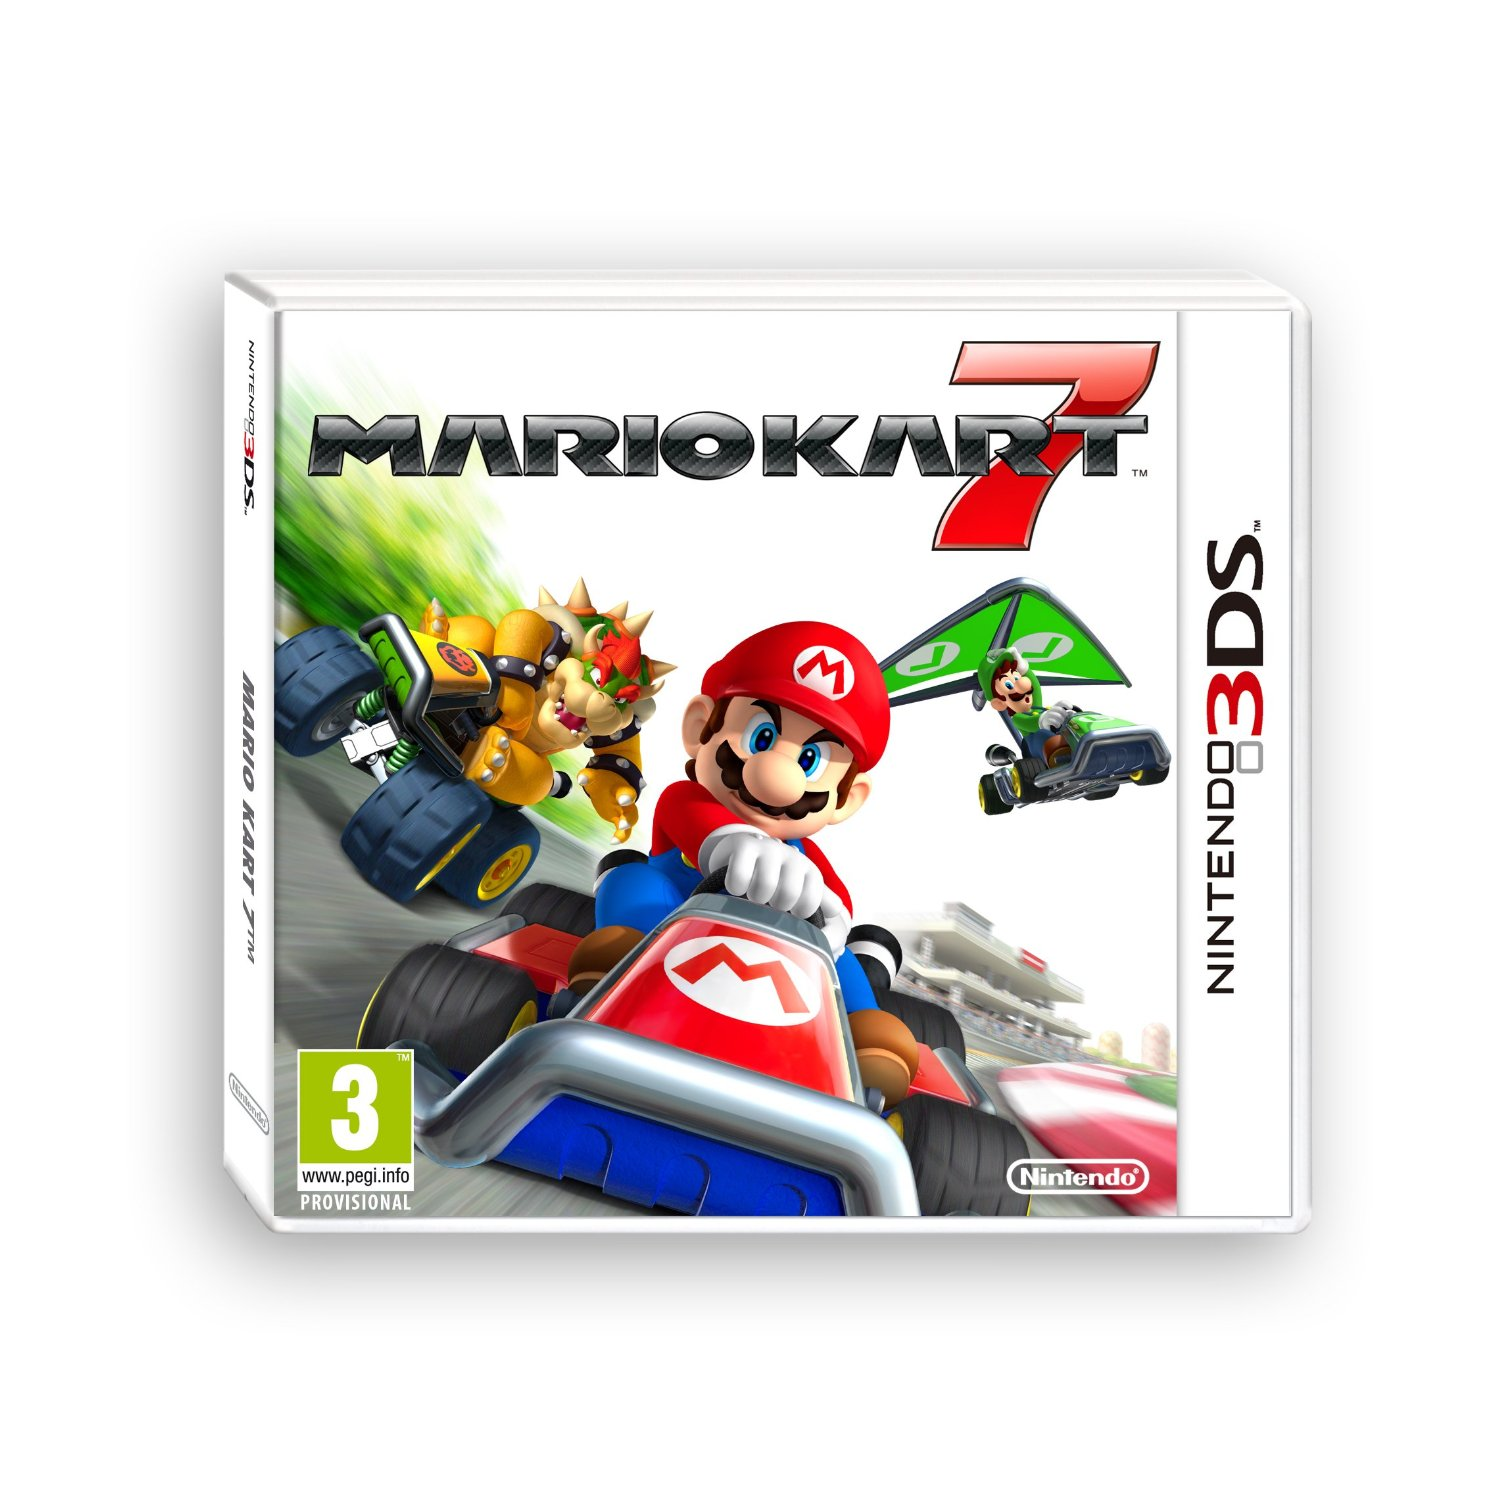 wholesale mario kart 7 on 3ds. Black Bedroom Furniture Sets. Home Design Ideas